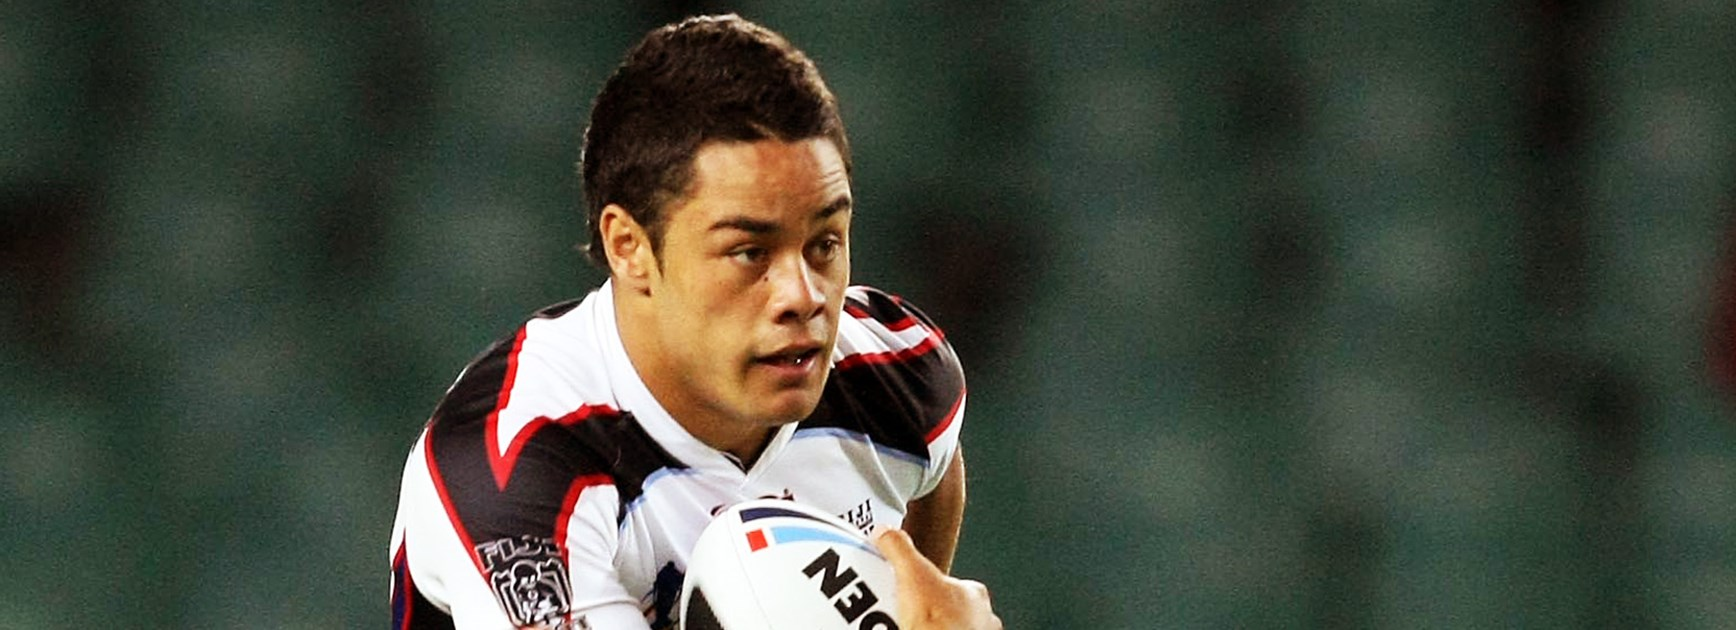 Jarryd Hayne in action for Fiji in 2008.